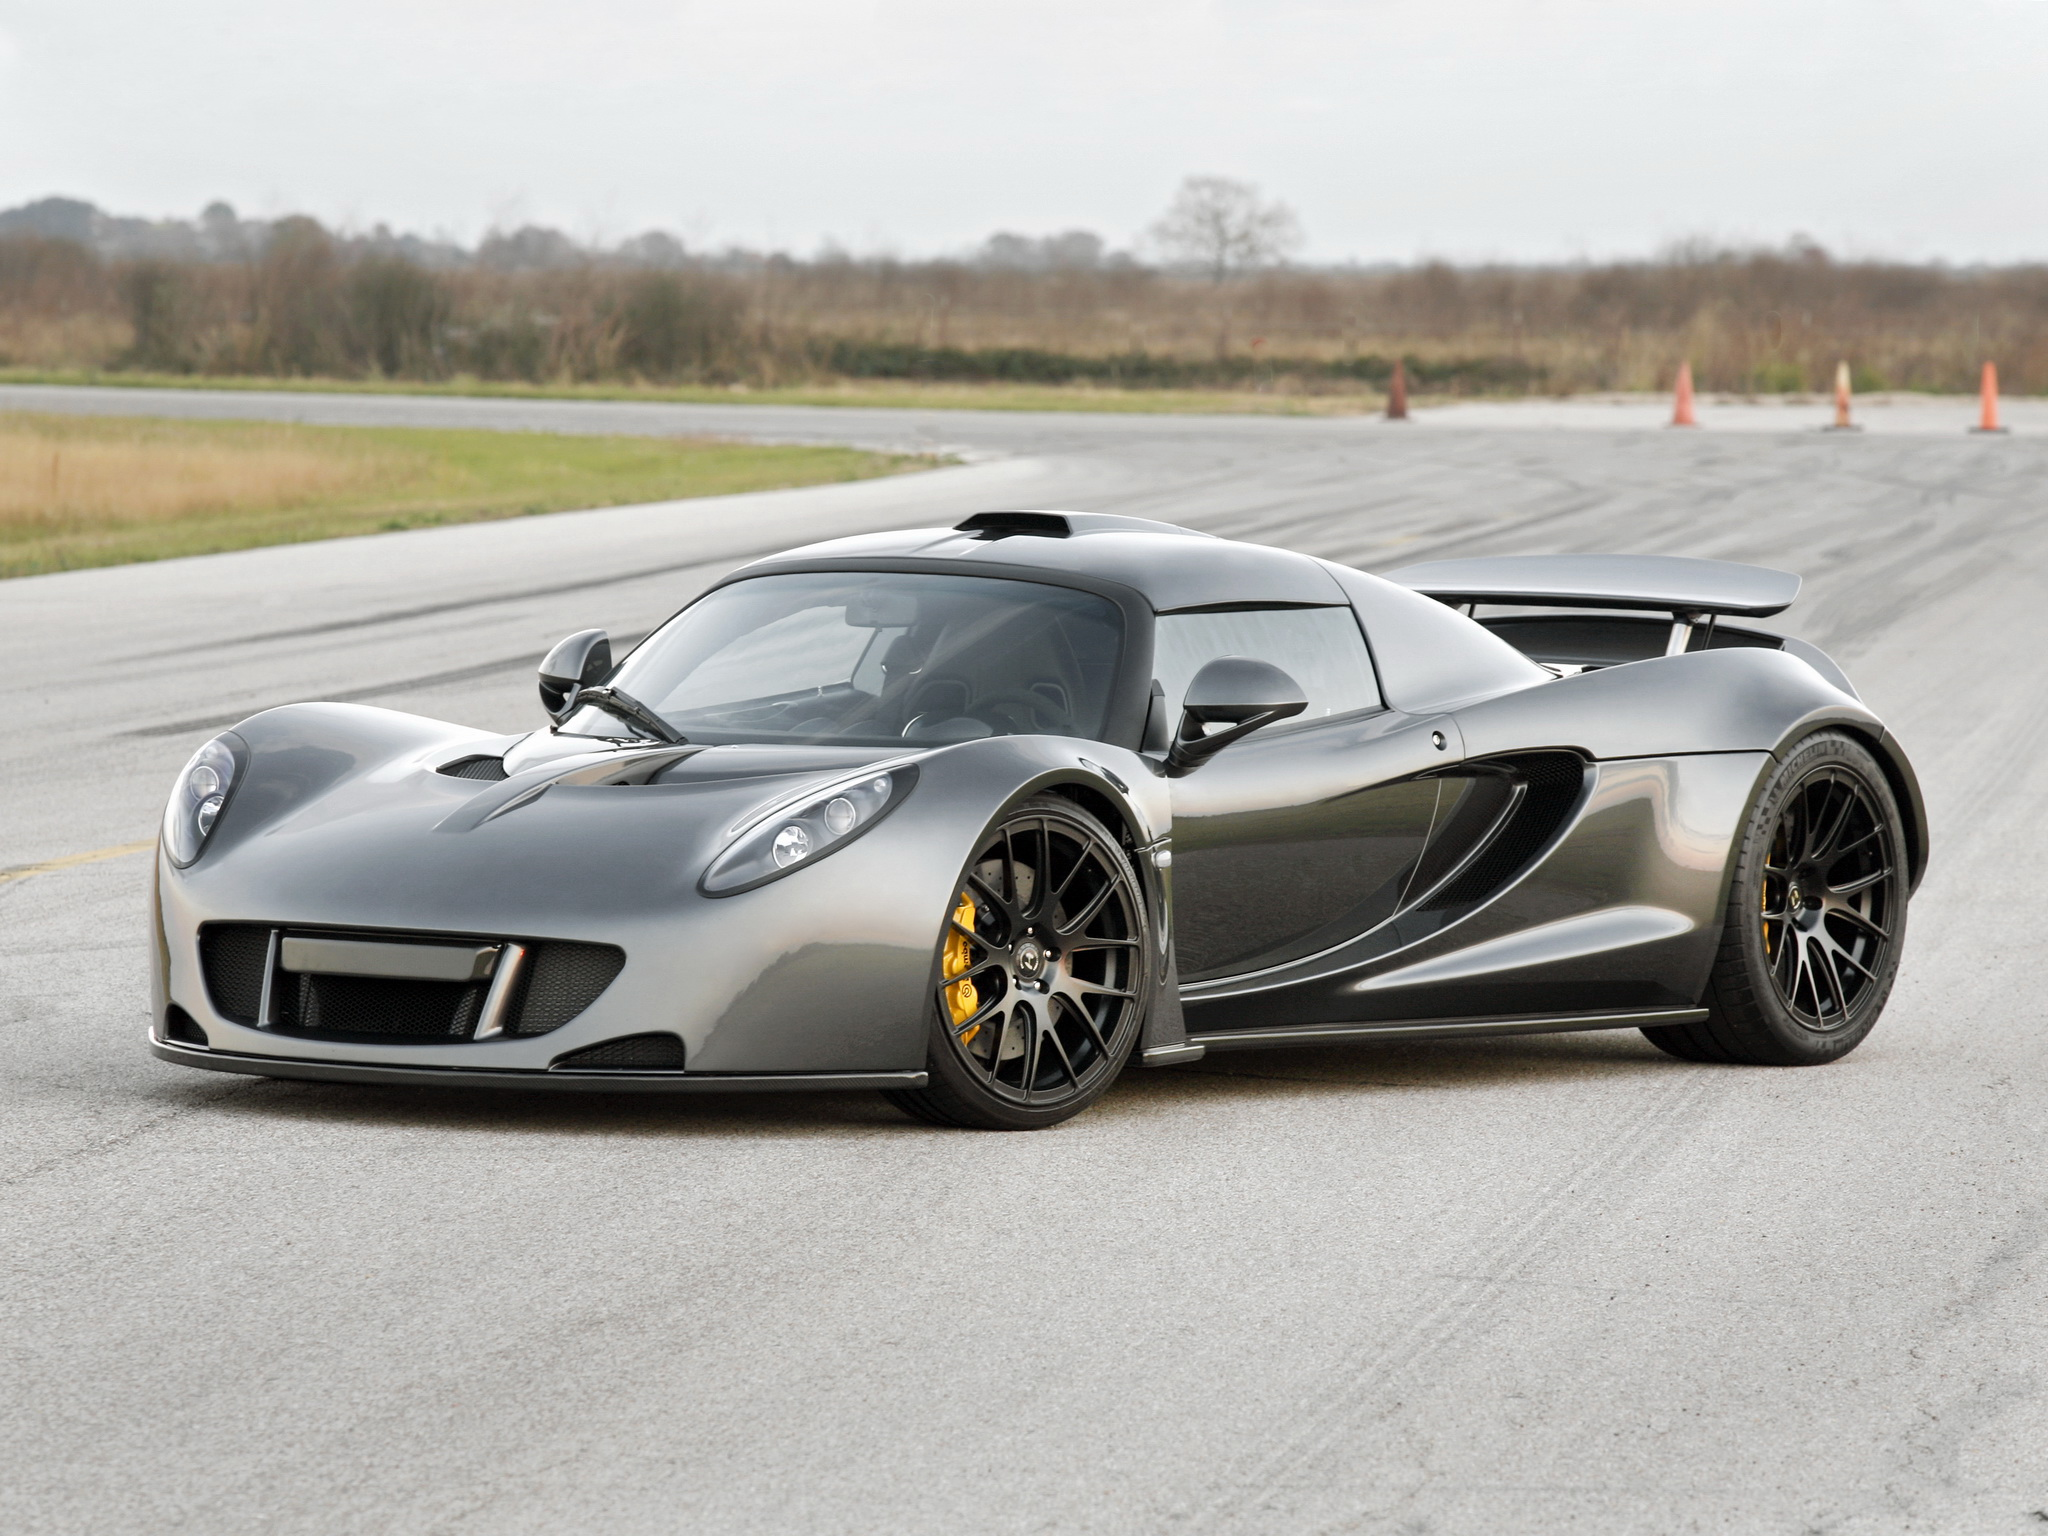 46 Hennessey Venom GT HD Wallpapers  Backgrounds  Wallpaper Abyss